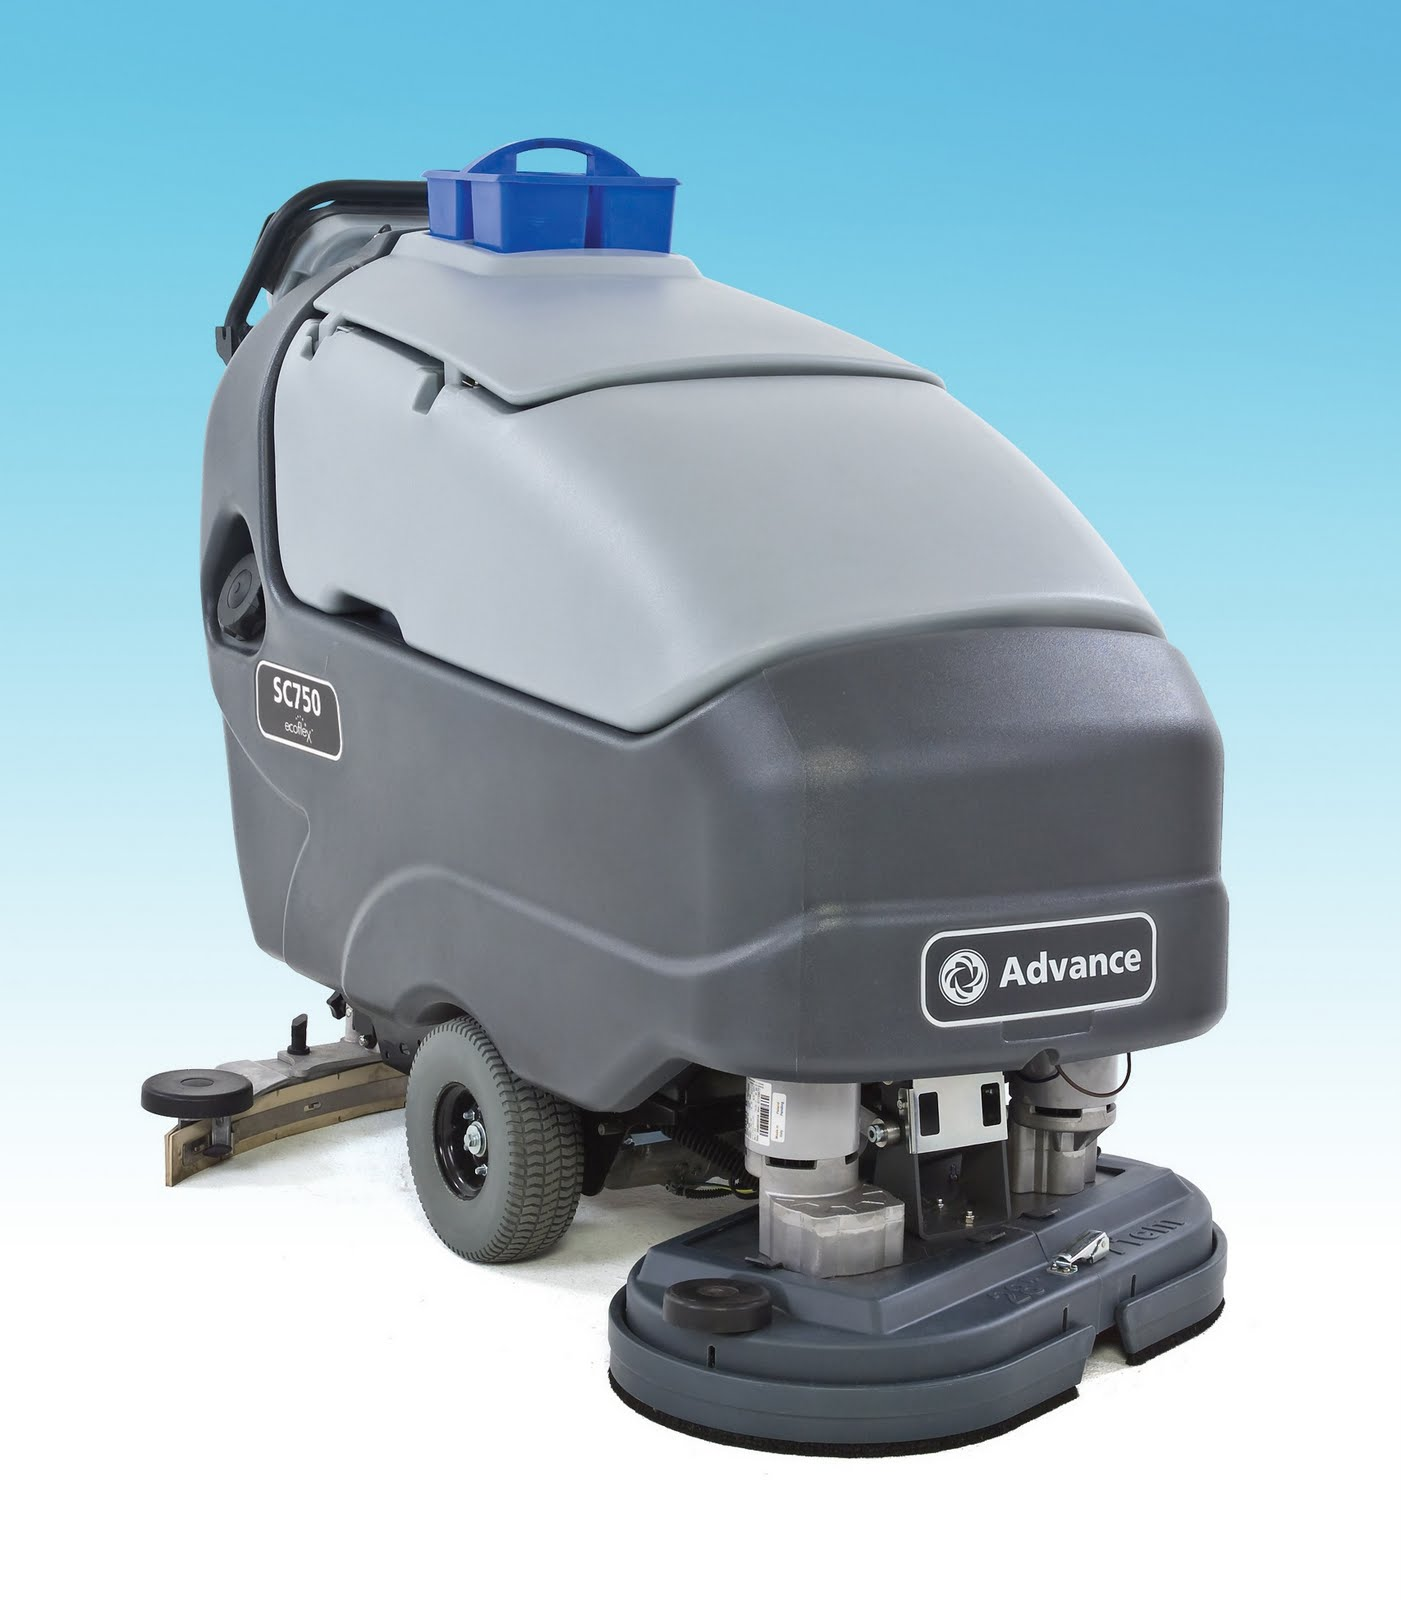 Advance smart cleaning one machine multiple cleaning for Floor cleaning machine